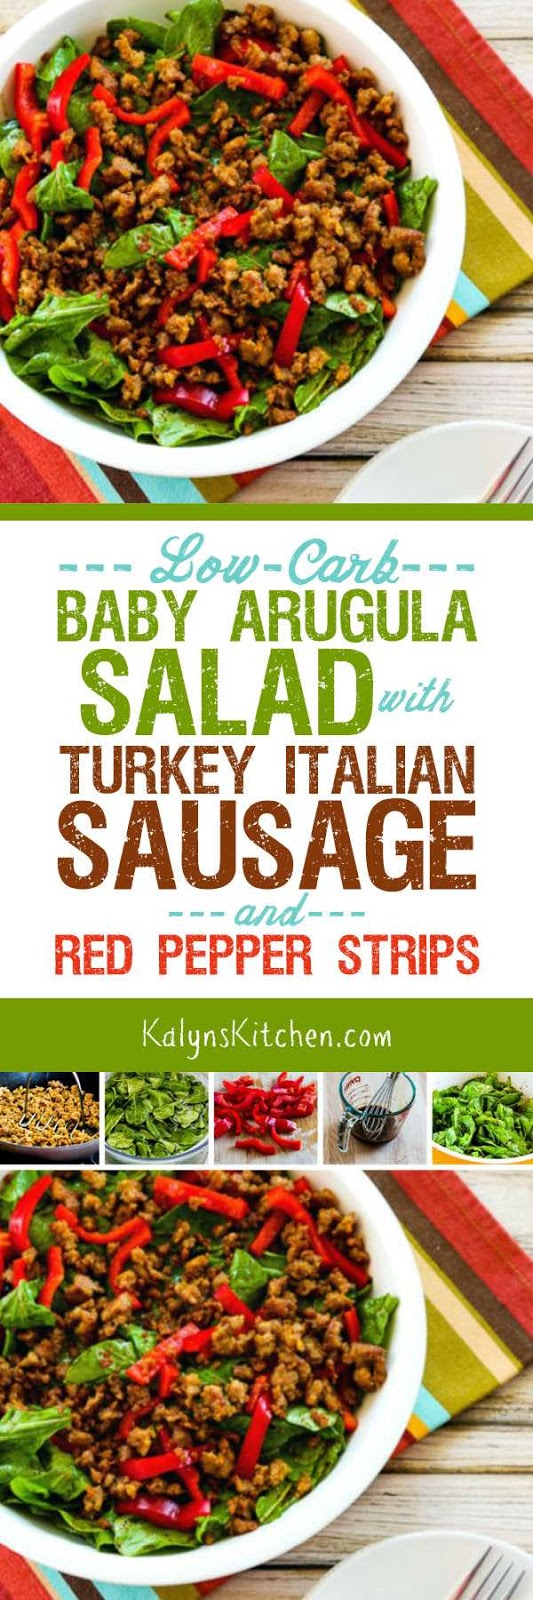 ... Baby Arugula Salad with Turkey Italian Sausage and Red Pepper Strips